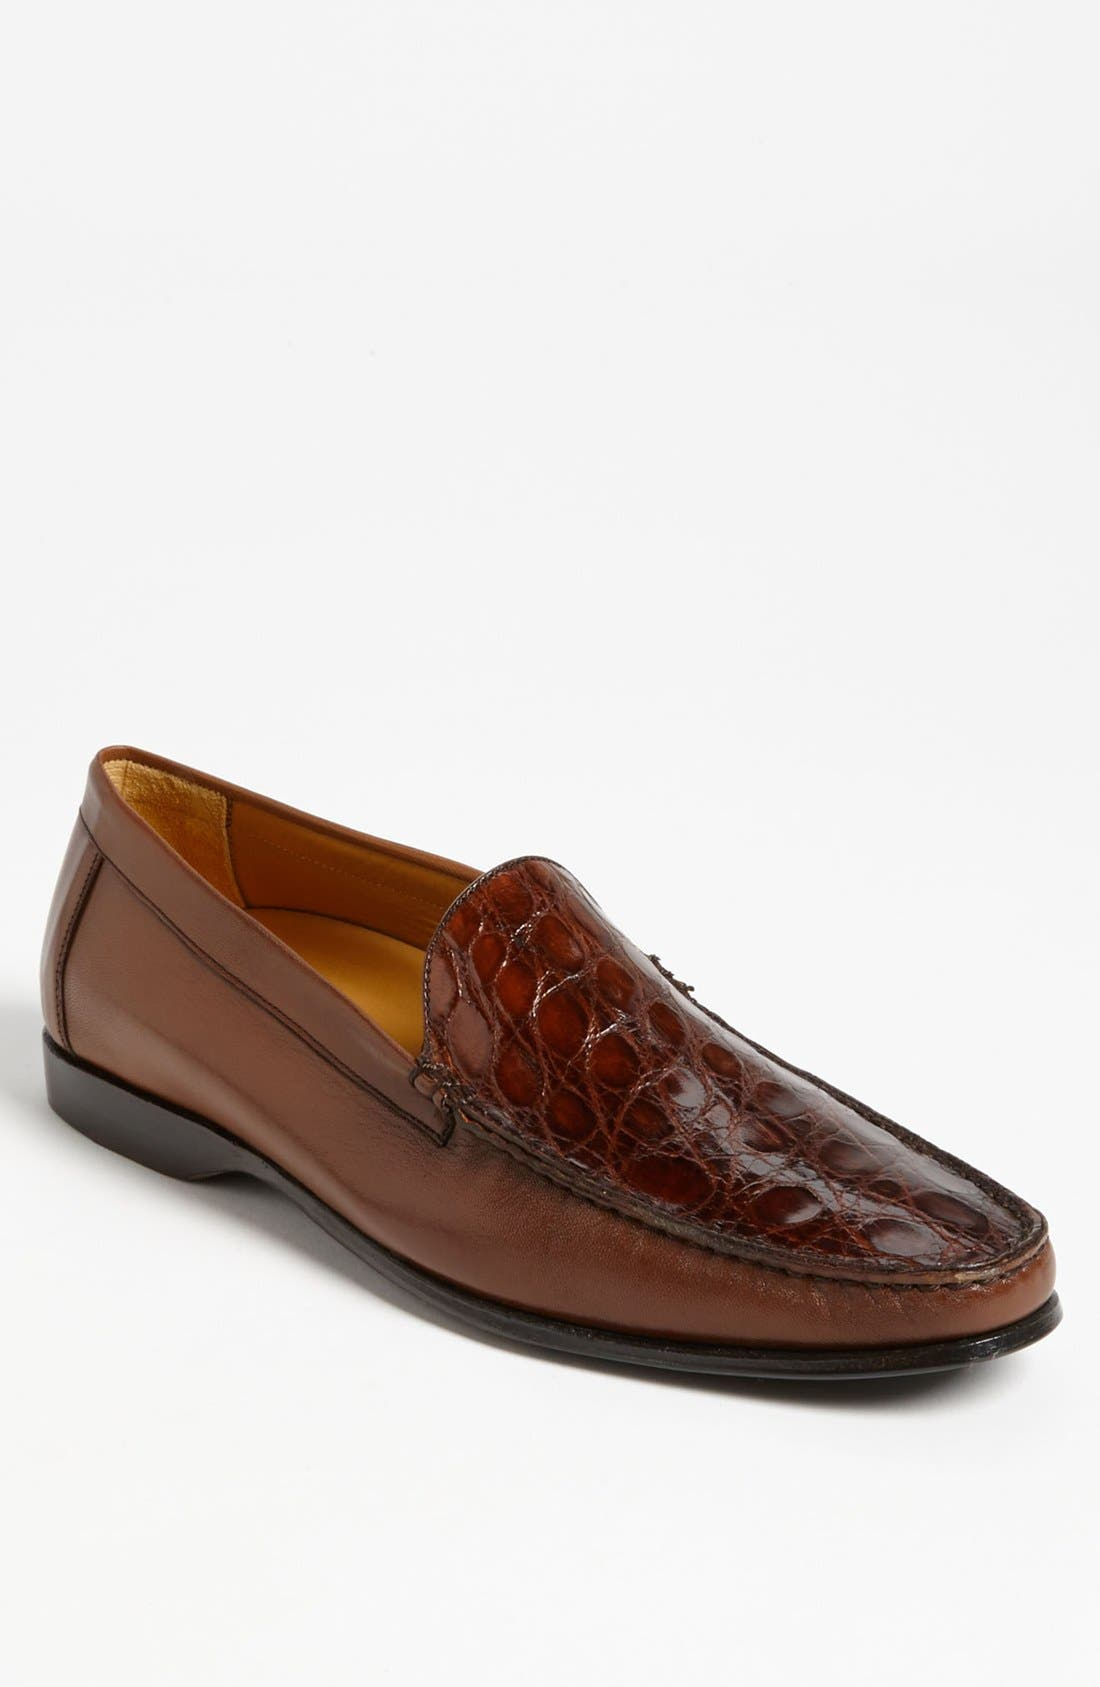 'Costanzo' Loafer,                         Main,                         color, Sport